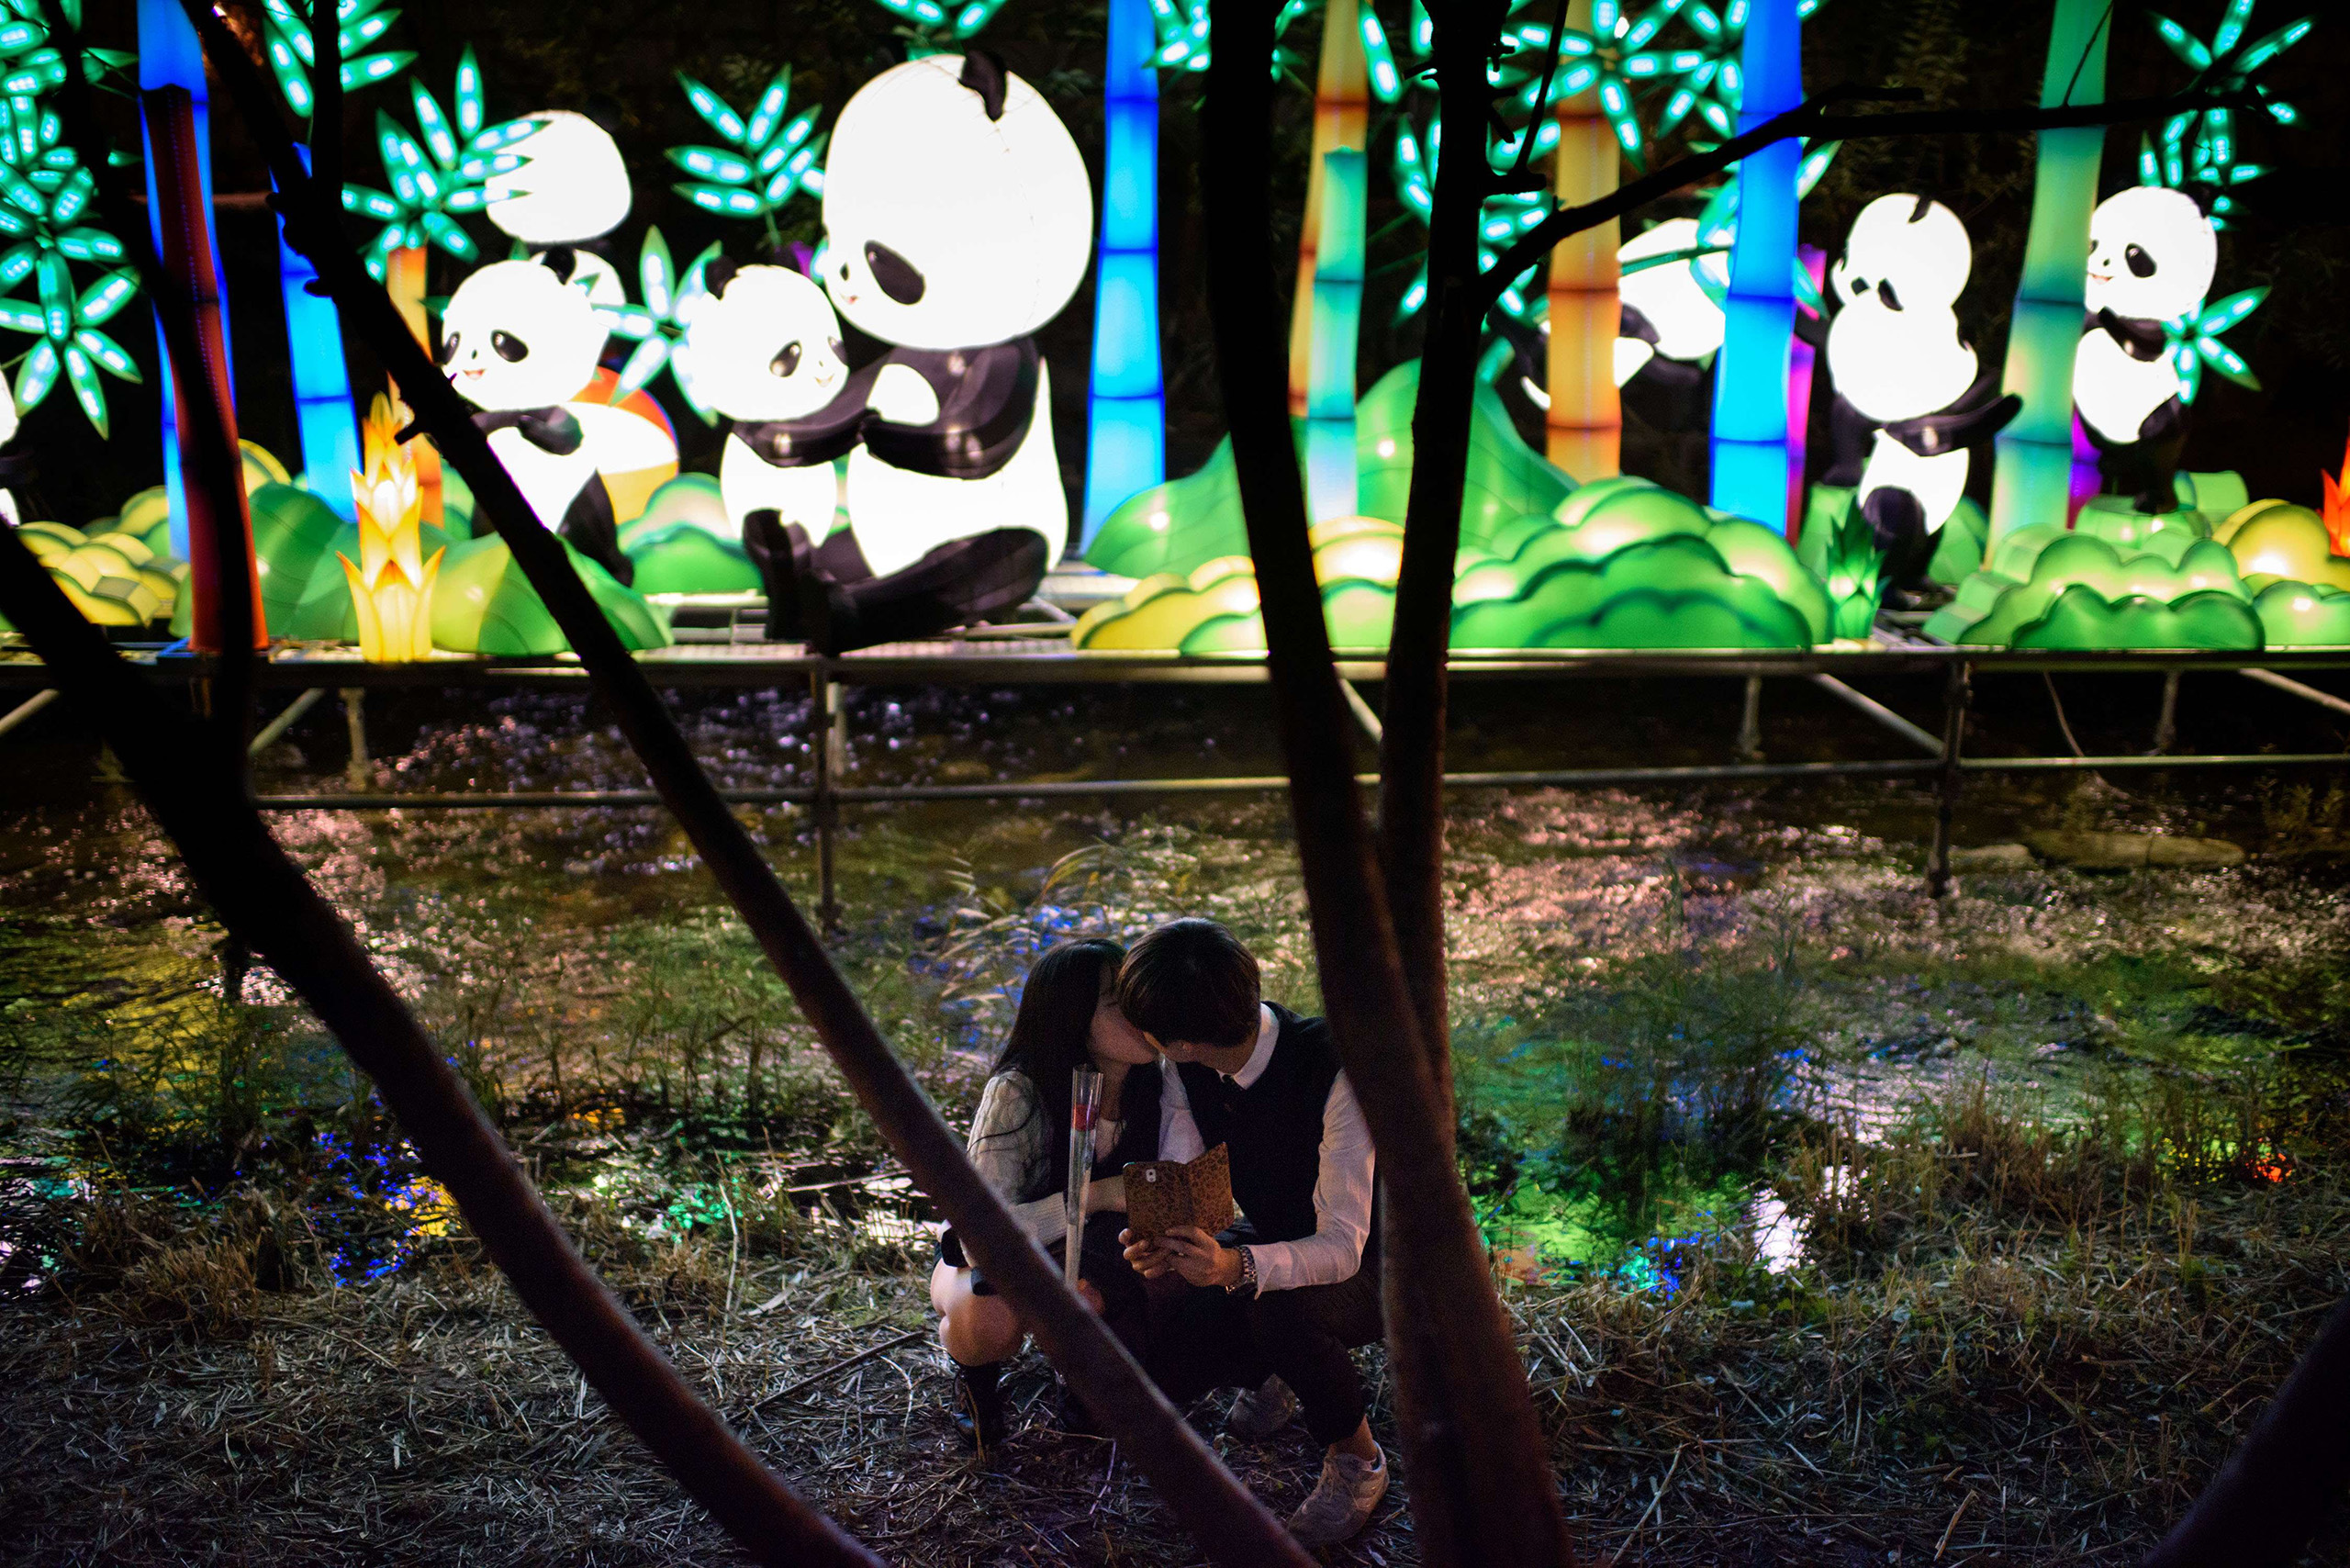 A couple kisses before a display of illuminated panda lanterns on the banks of the Cheonggyechun stream in central Seoul during the 6th annual lantern festival on Nov. 6, 2014.